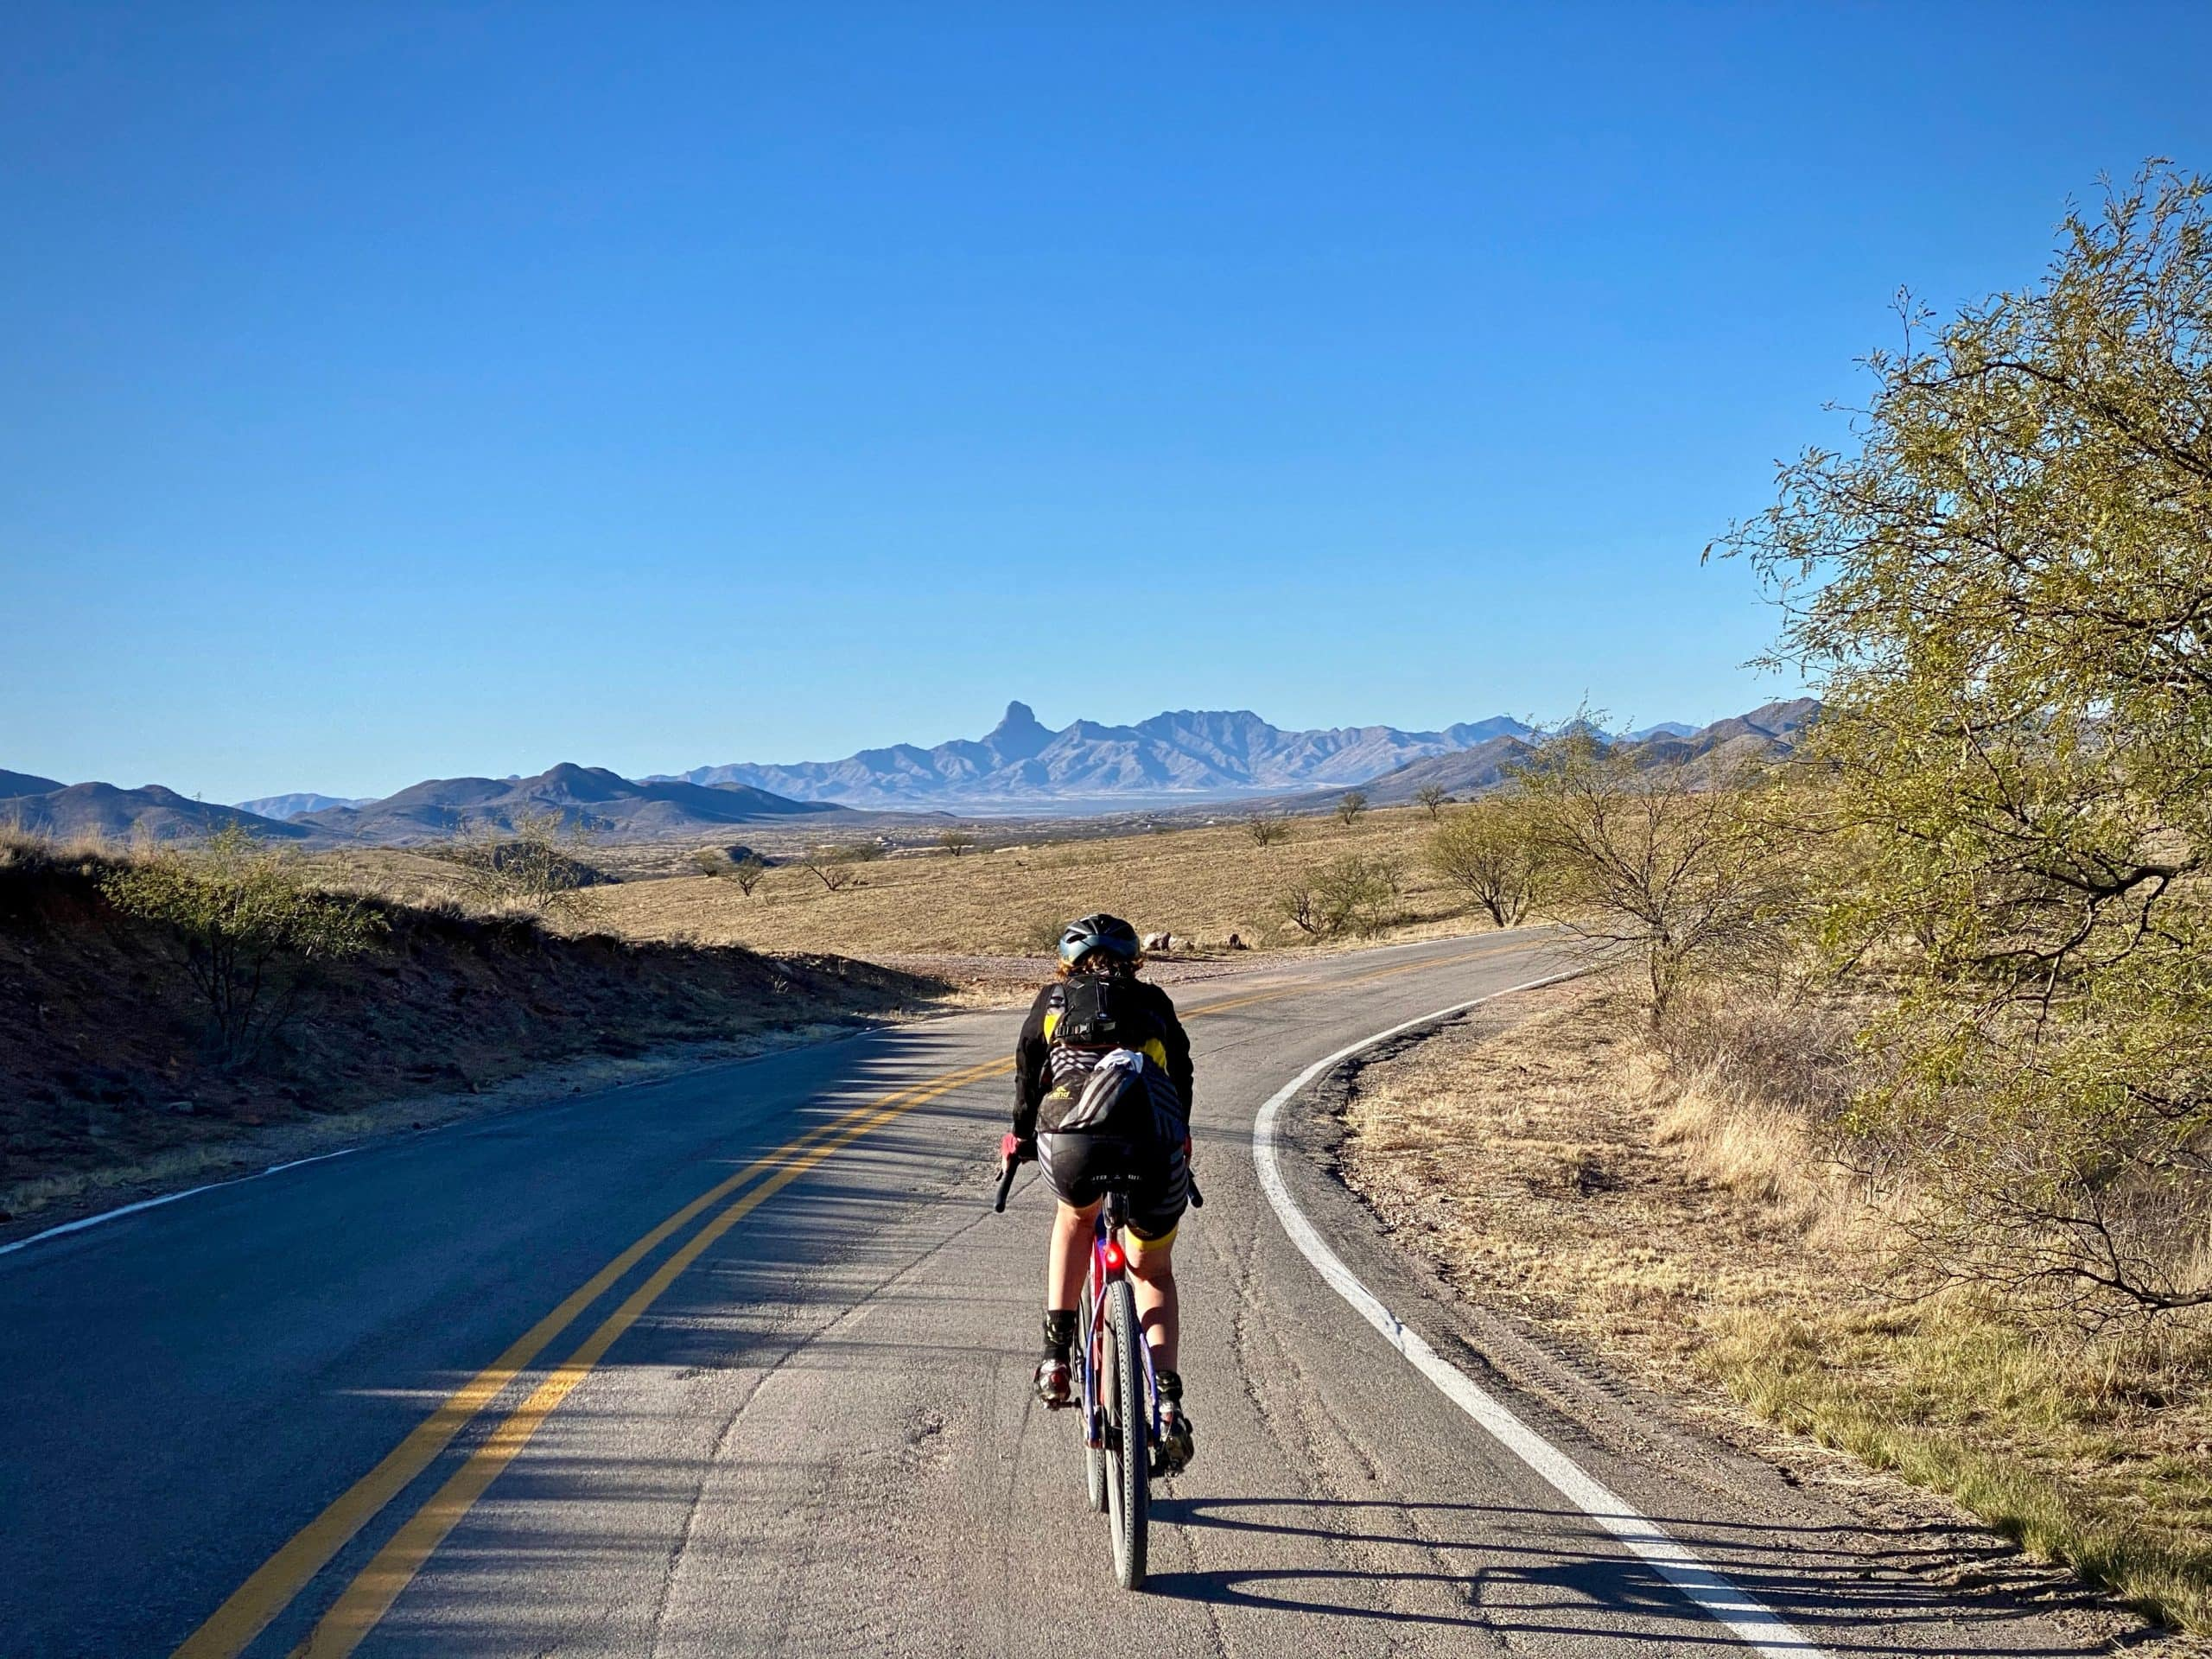 Cyclist on Ruby road with Baboquivari Peak in the background.